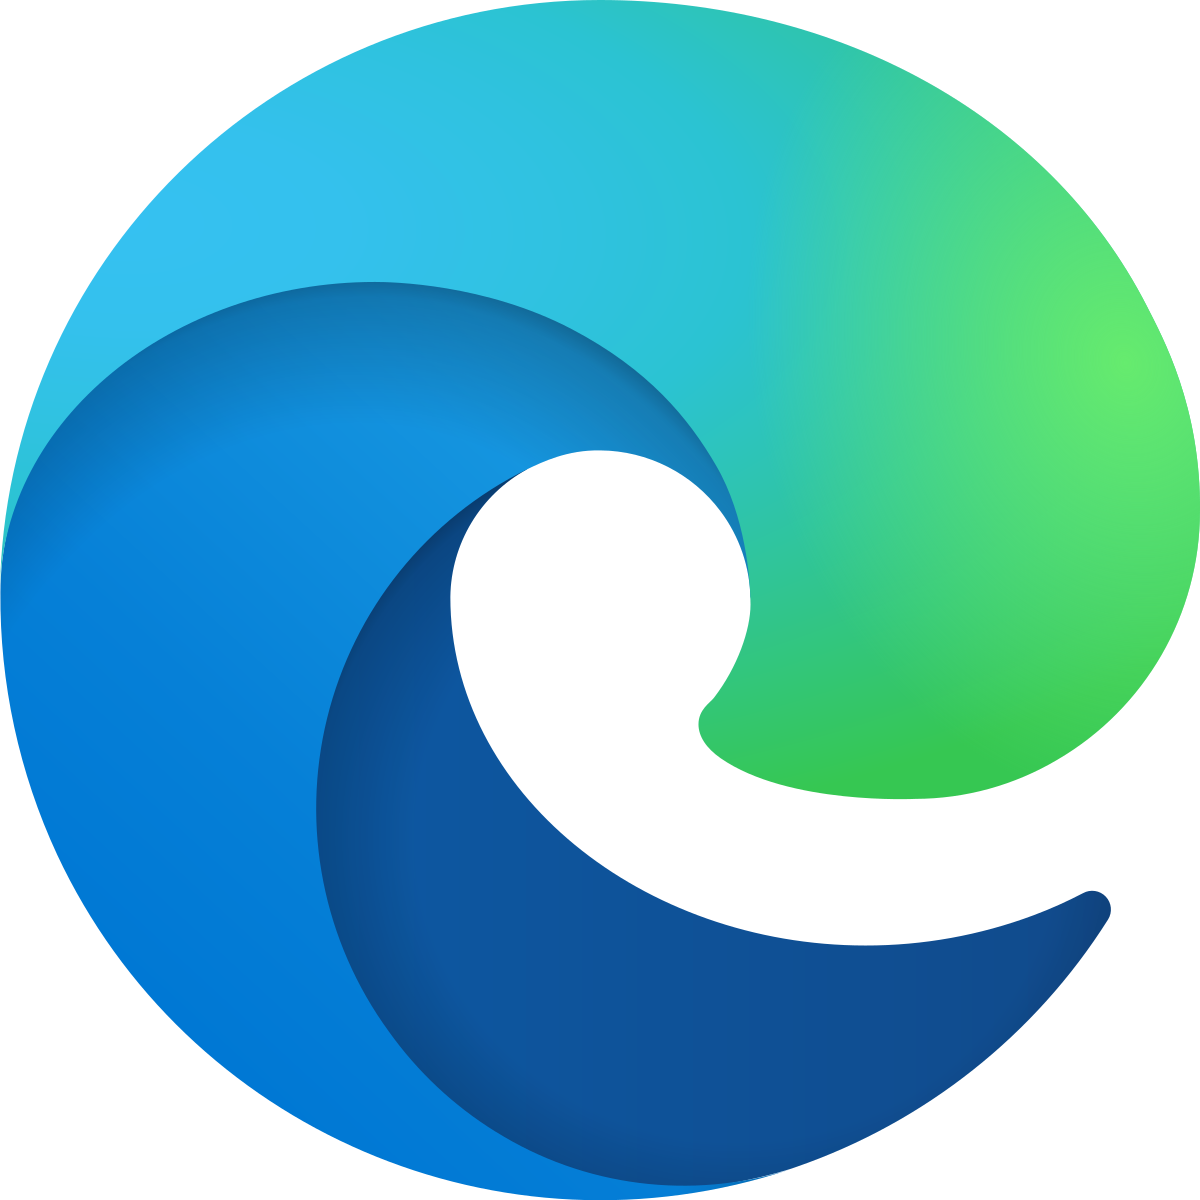 Icon for the Microsoft Edge web browser.